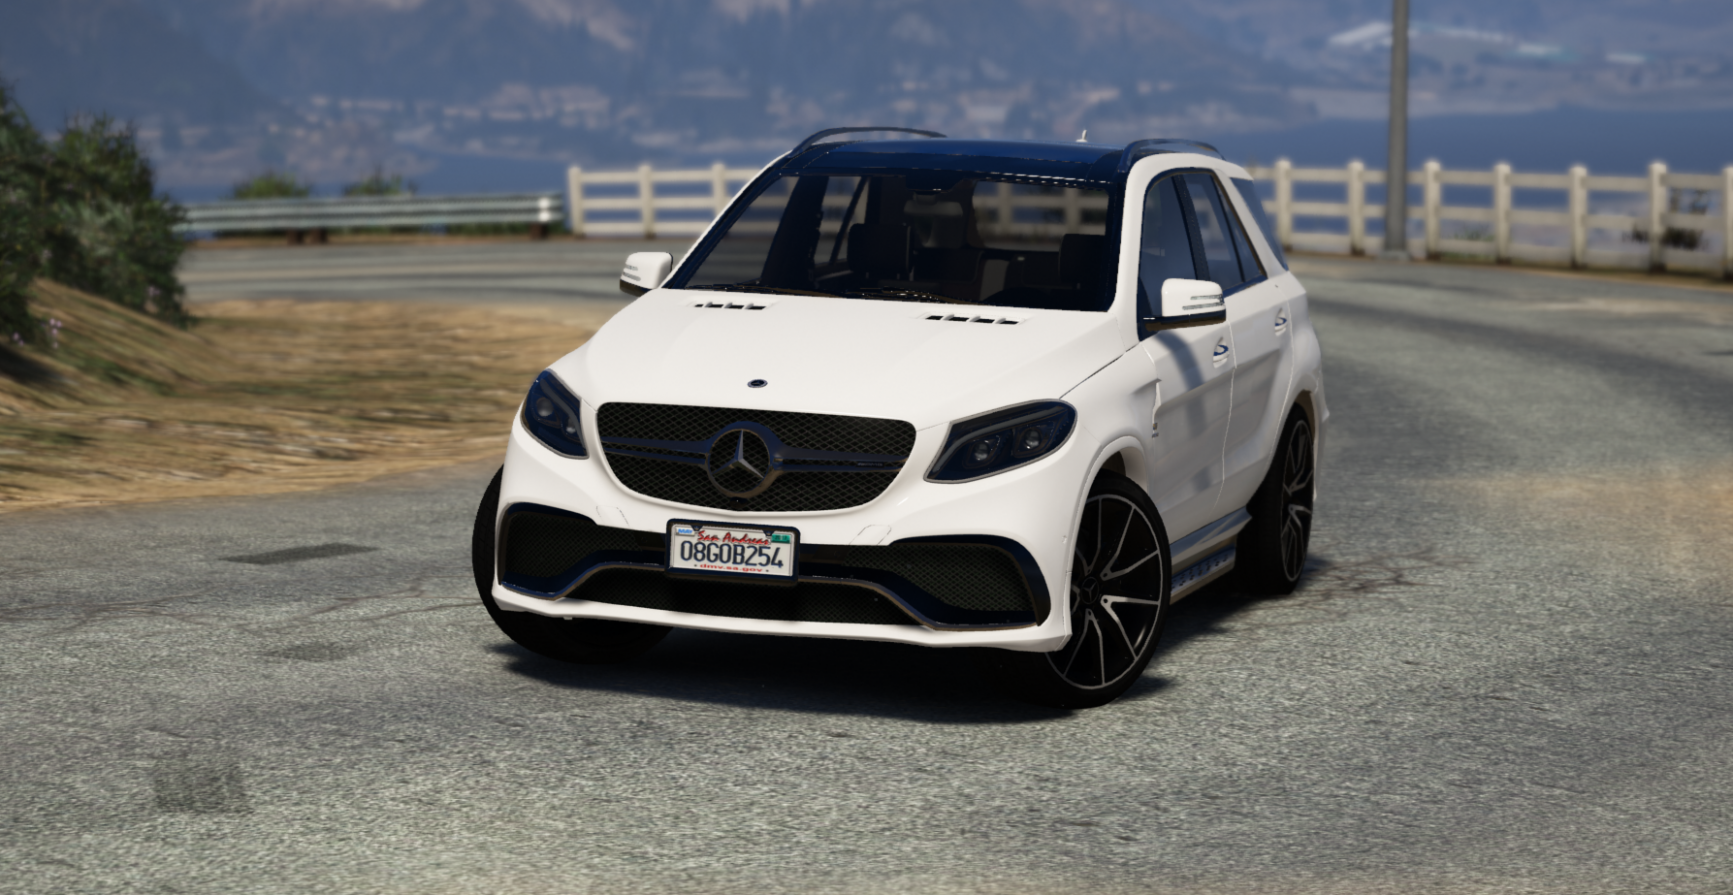 Mercedes-AMG GLE 11 S 11MATIC (RESTYLING) [Add-on / Replace] - GTA11 ..